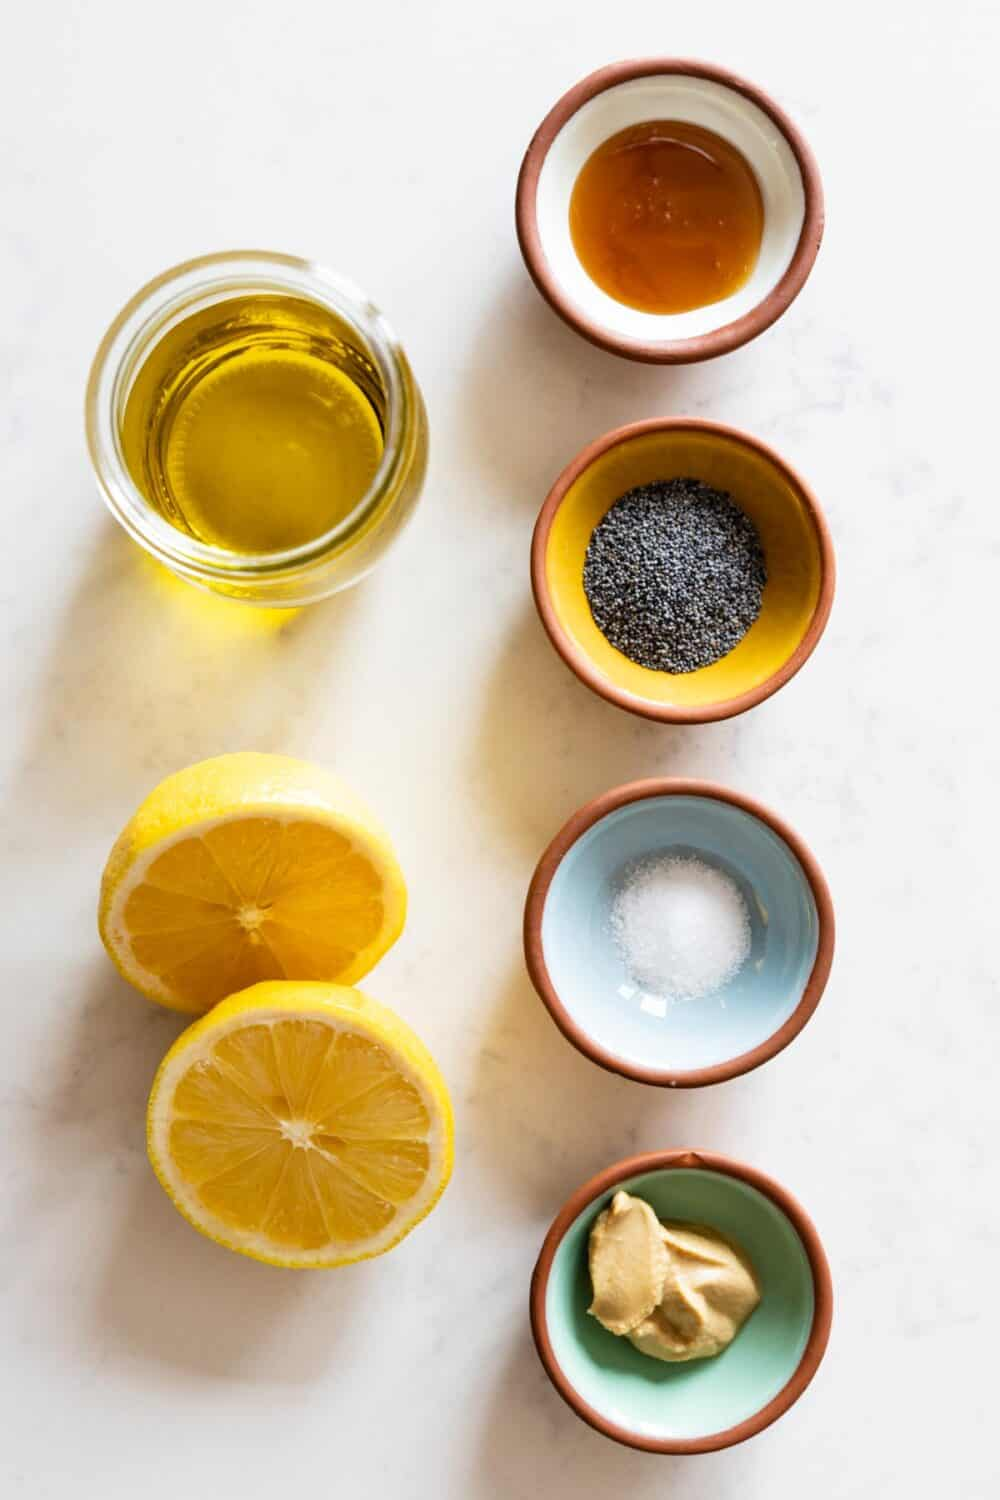 Ingredients for Lemon Poppy Seed Dressing laid out on a kitchen counter.